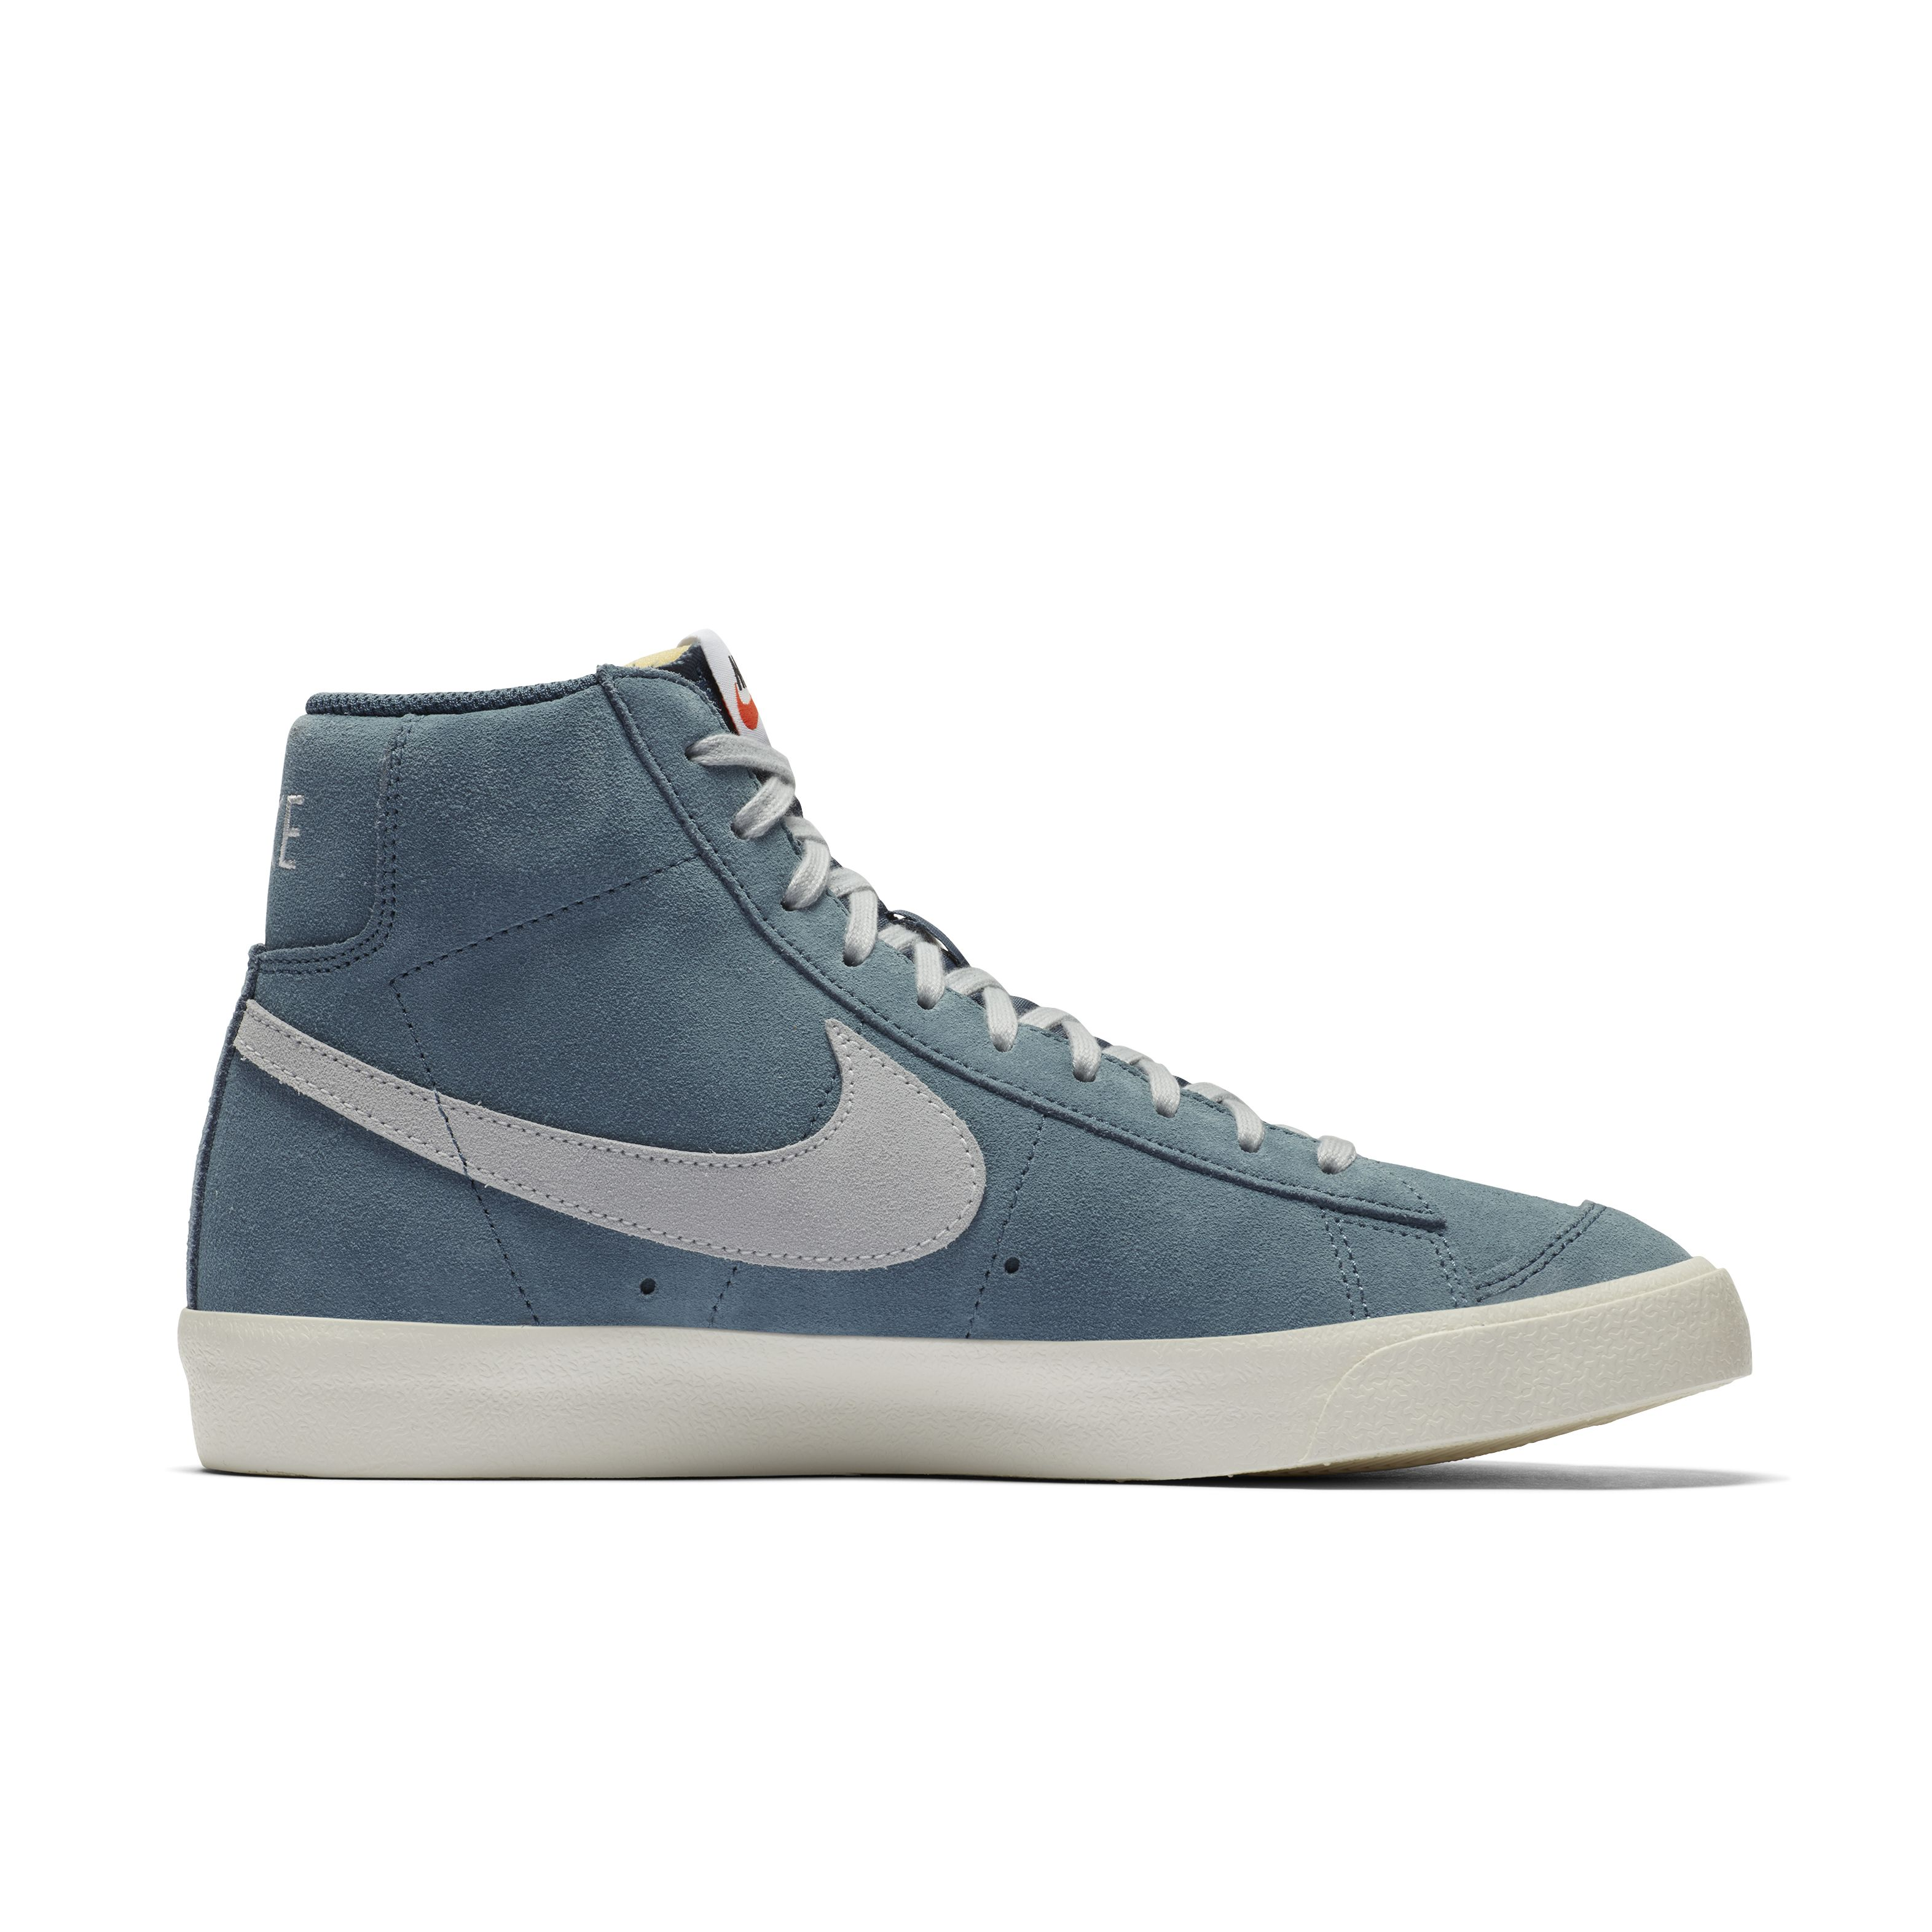 Nike Blazer Mid '77 Suede Thunderstorm/Sail/Pure Platinum